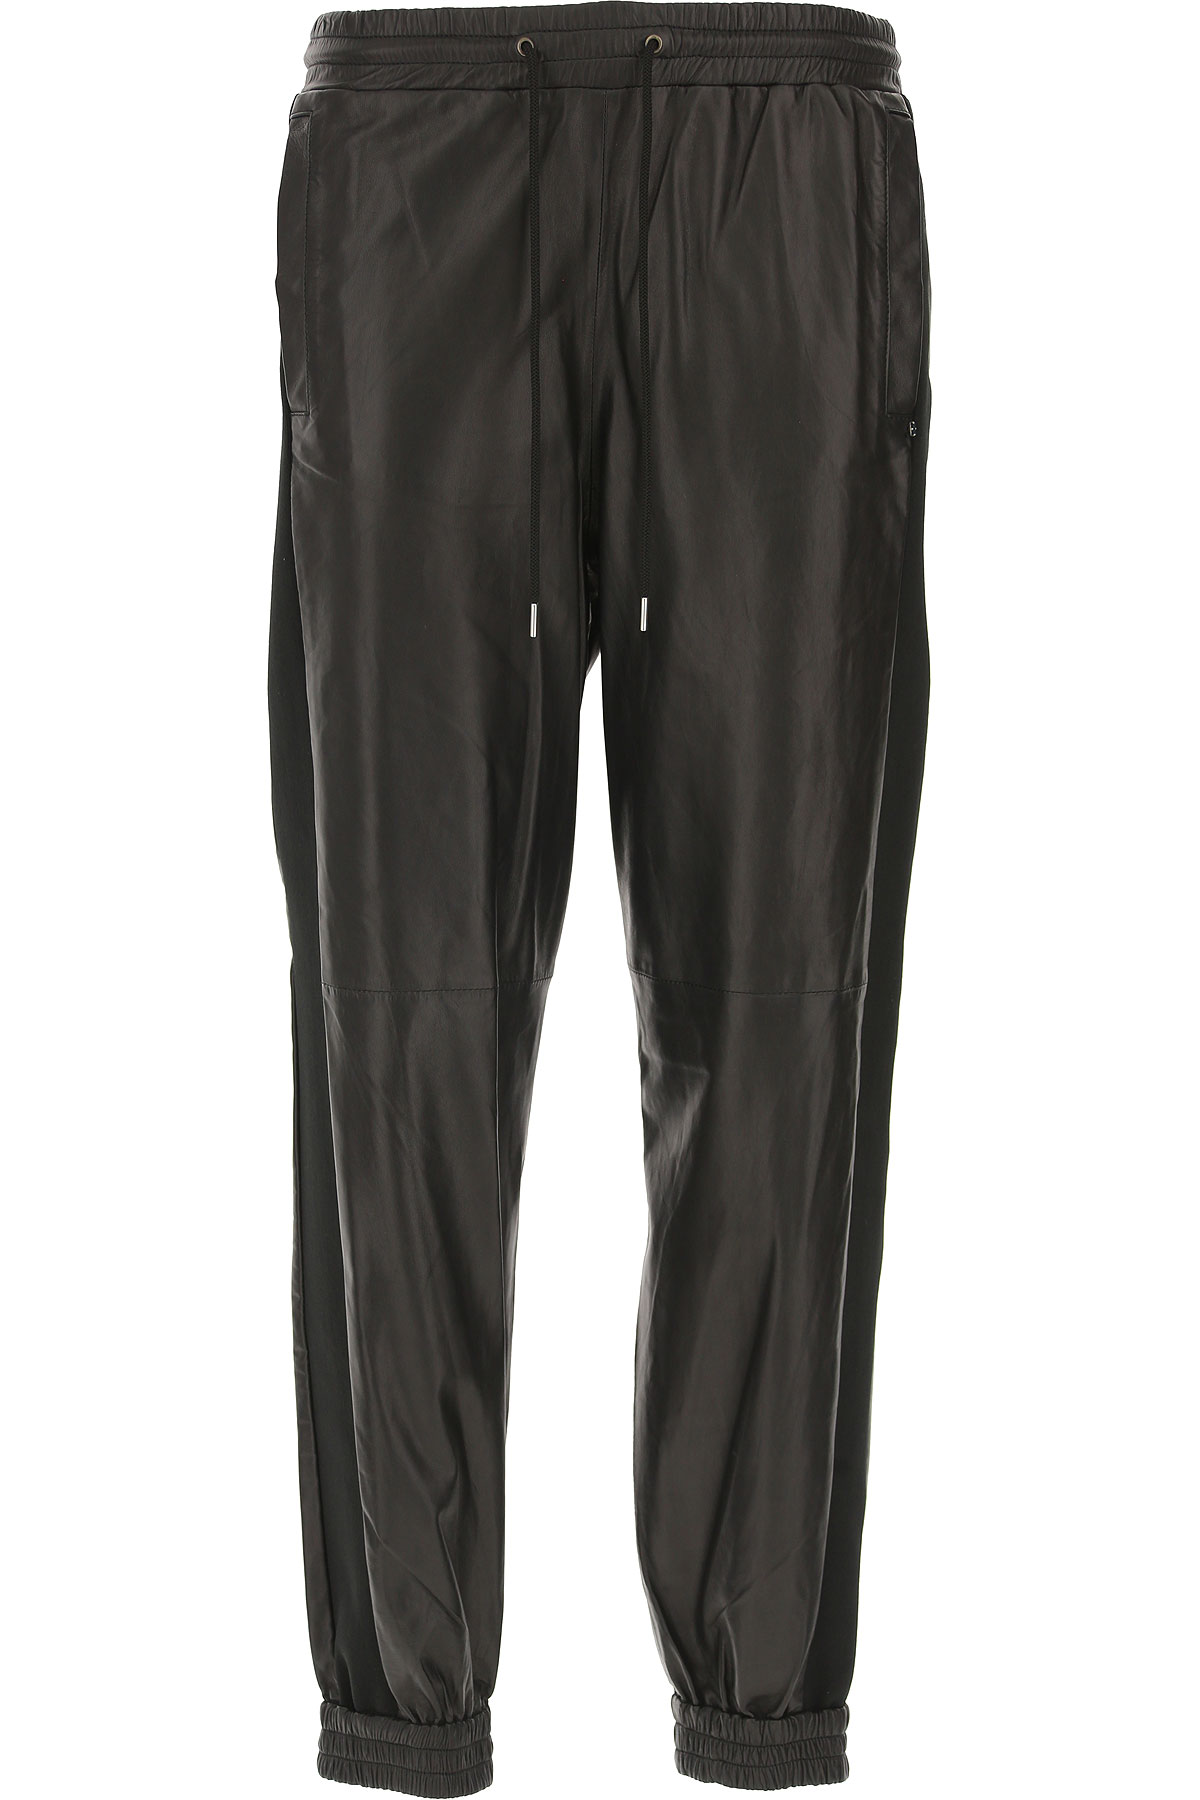 Image of SportMax Pants for Women, Black, Leather, 2017, 26 28 30